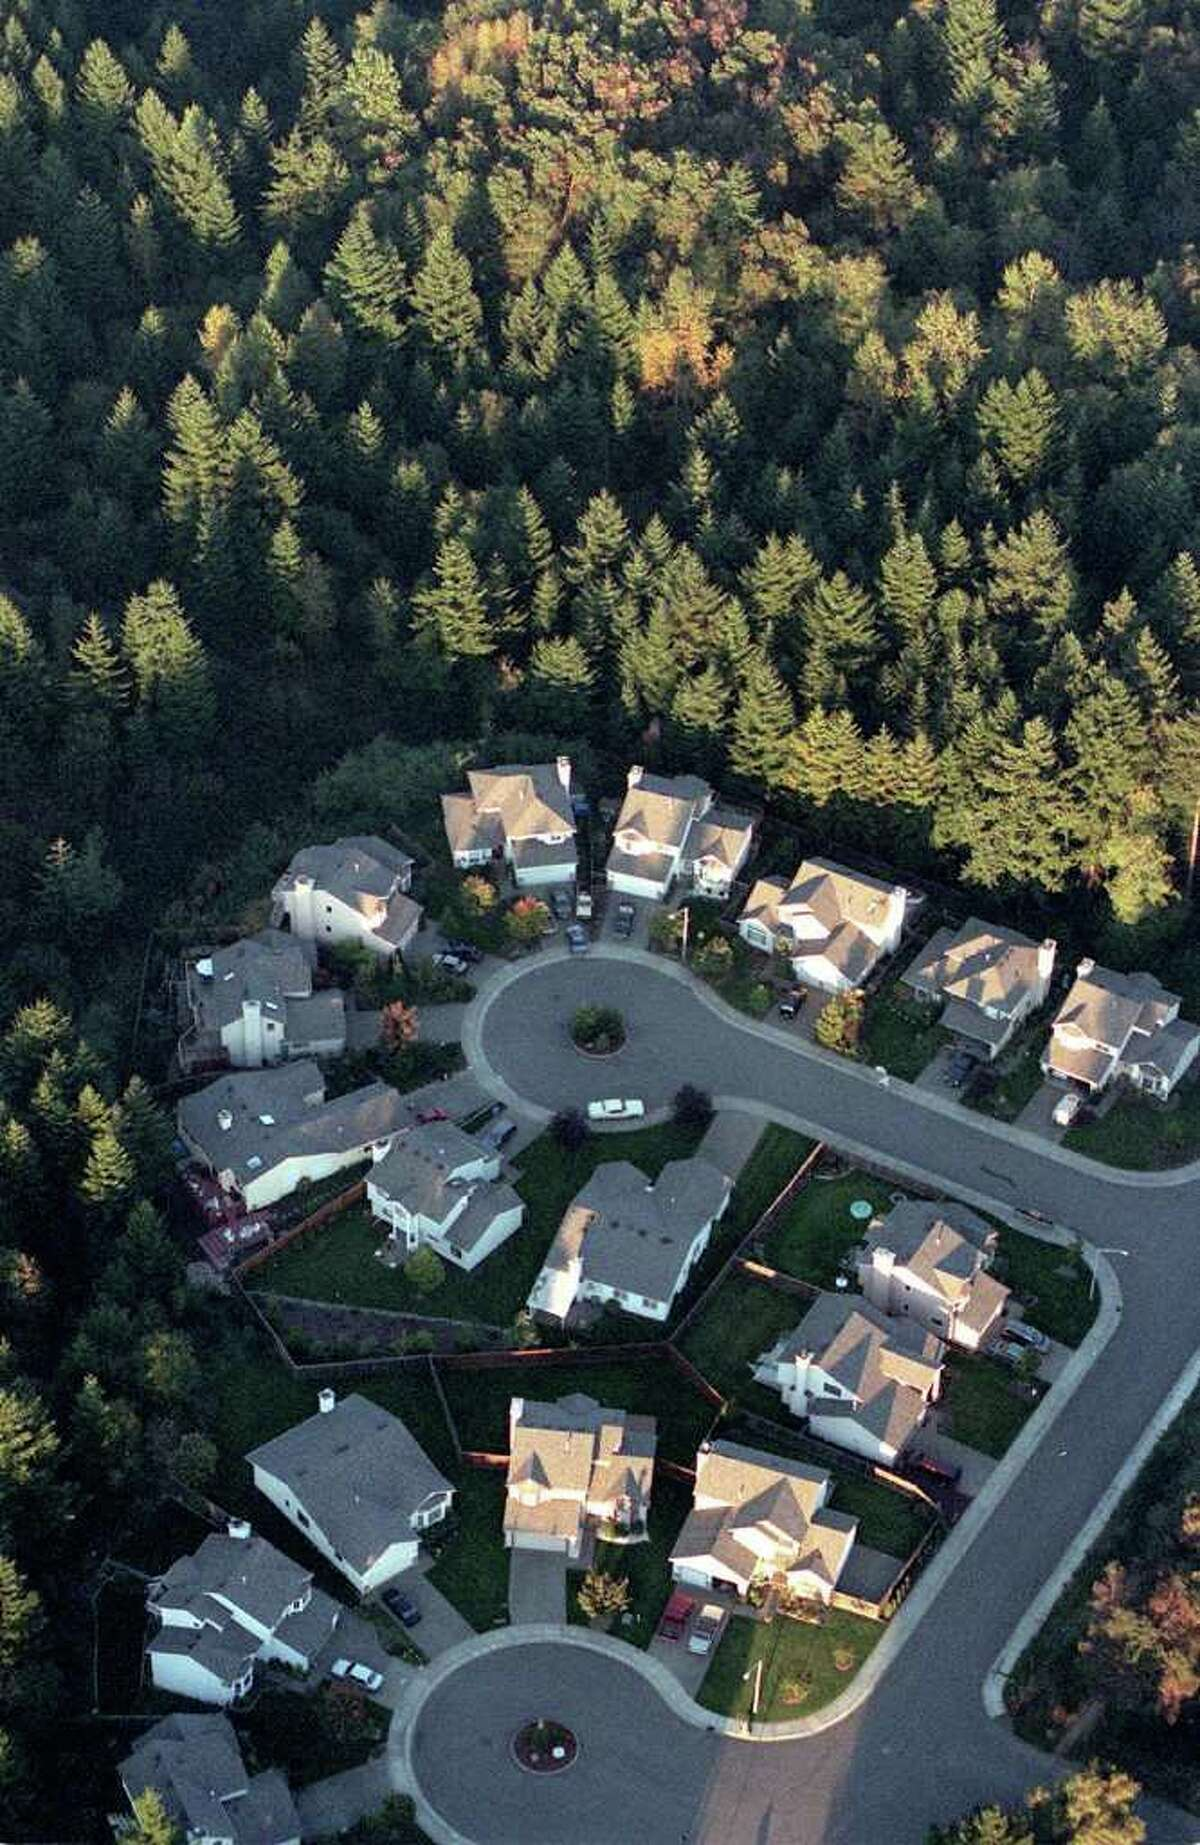 8. Federal Way had a median house size of 1,640 square feet, with three bedrooms and two bathrooms, on a 9,000-square-foot lot, according to a Realtor.com analysis of houses for sale in September.